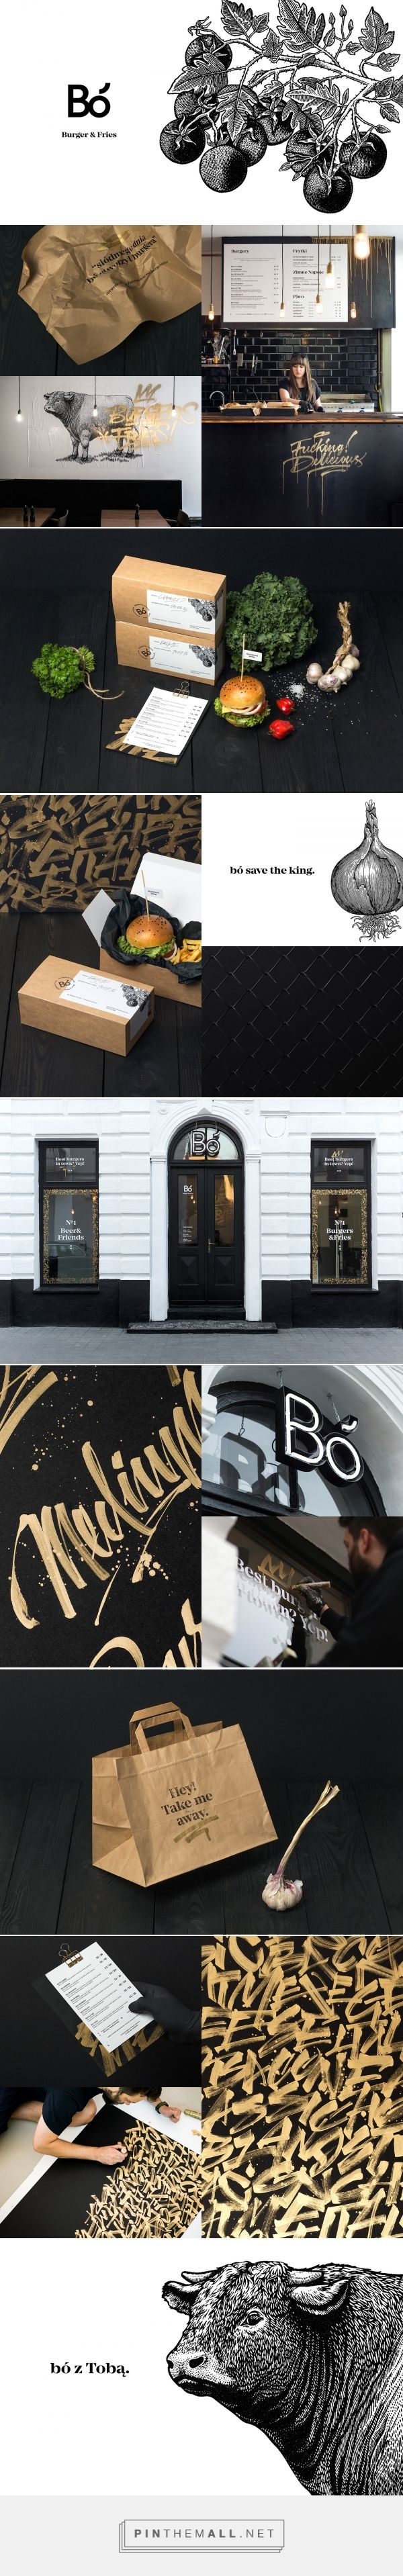 Bo Burger and Fries Restaurant Branding and Menu Design by Hopa Studio | Fivestar Branding Agency – Design and Branding Agency & Inspiration Gallery